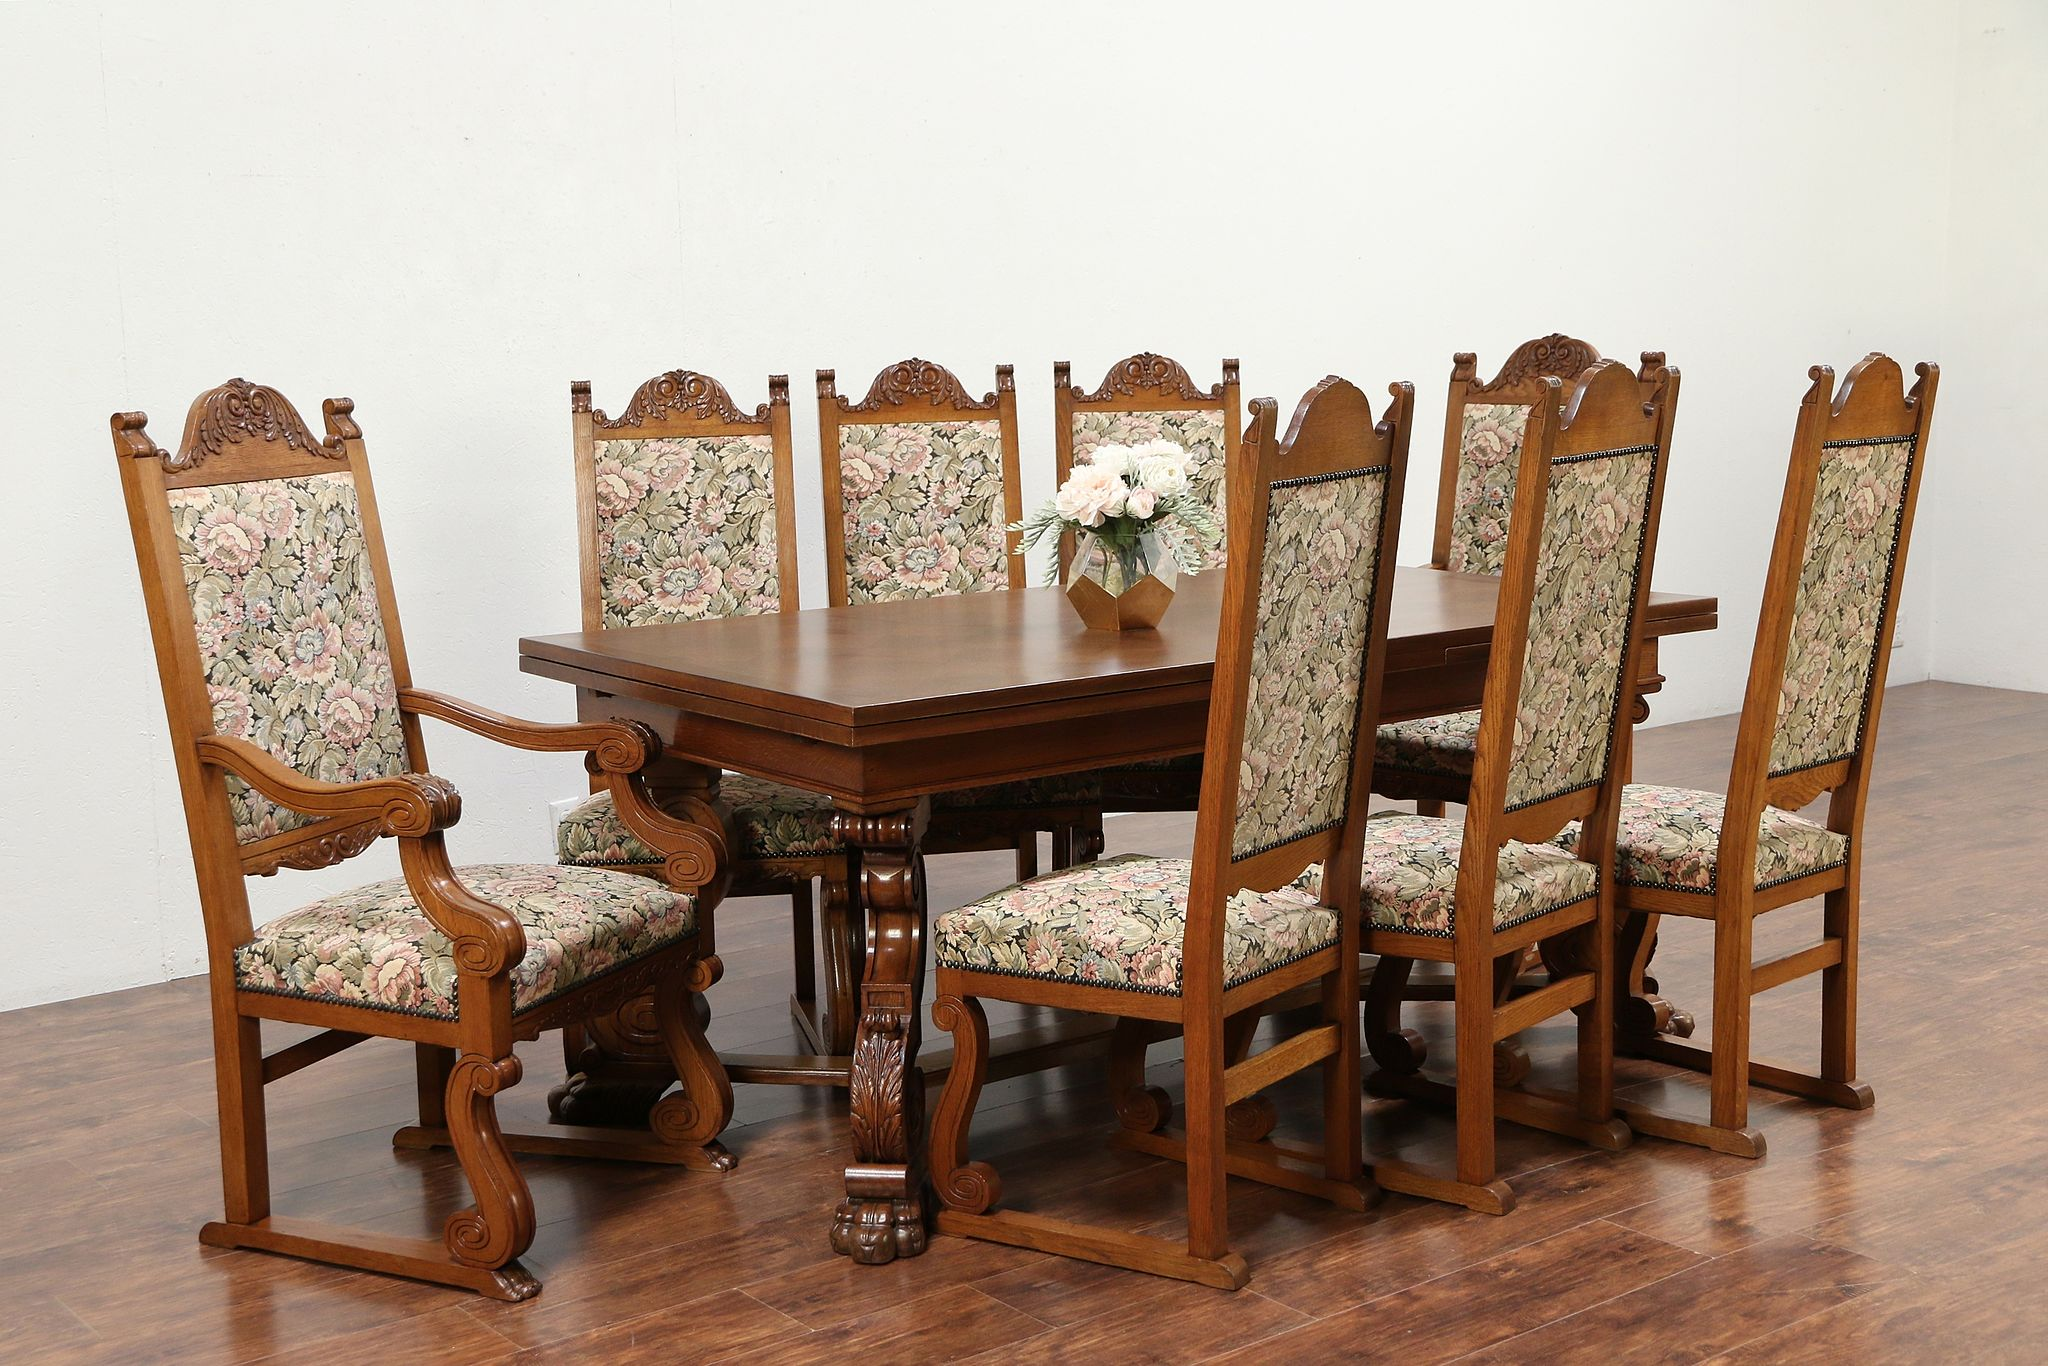 8 Chair Dining Set Oak Scandinavian Antique Dining Set 10 Table 8 Chairs Carved Lion Paws 30030